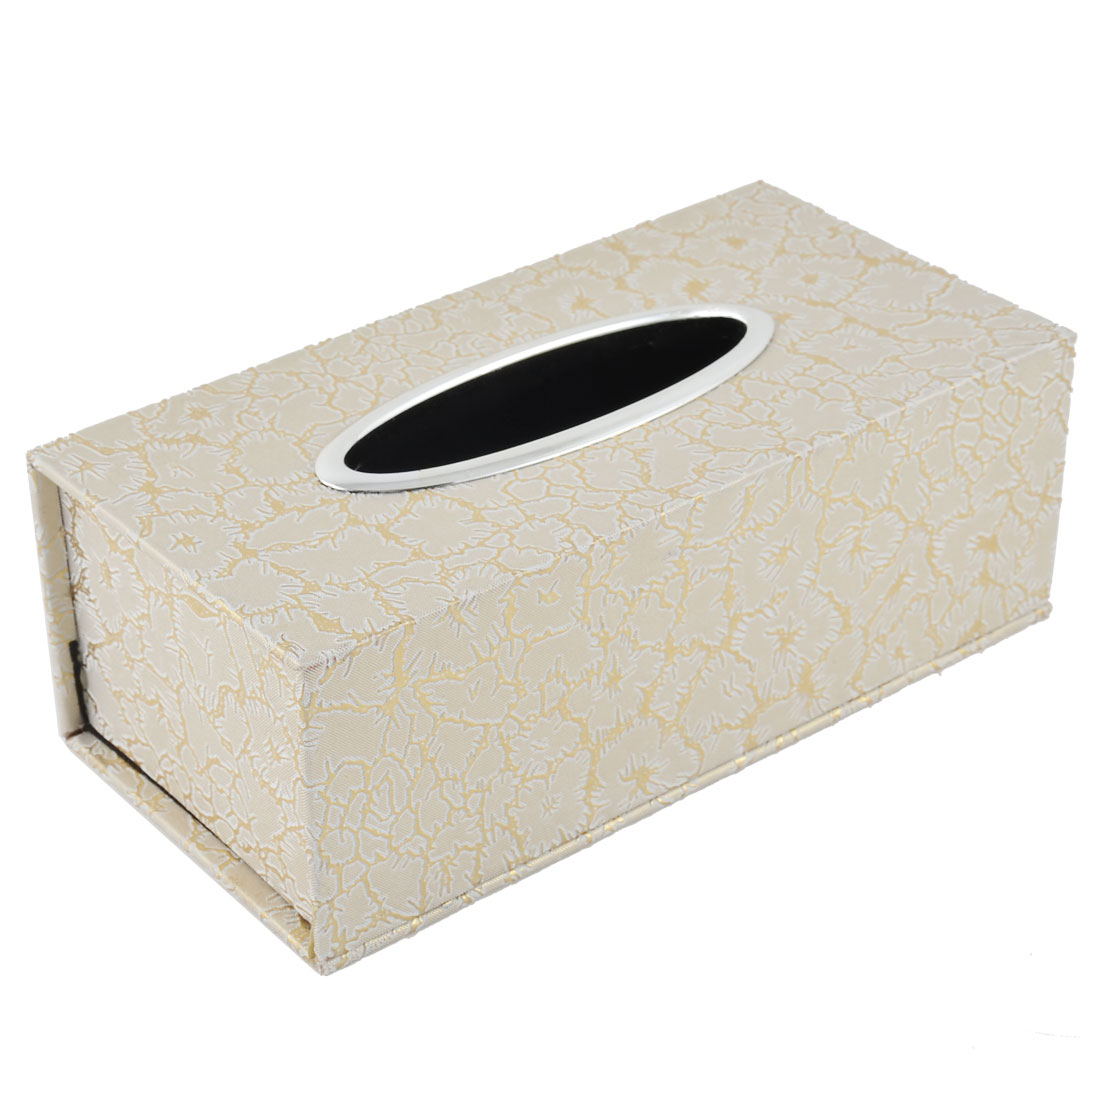 Home Bathroom Rectangular Flower Printed Paper Tissue Box Case Holder Ecru Gold Tone